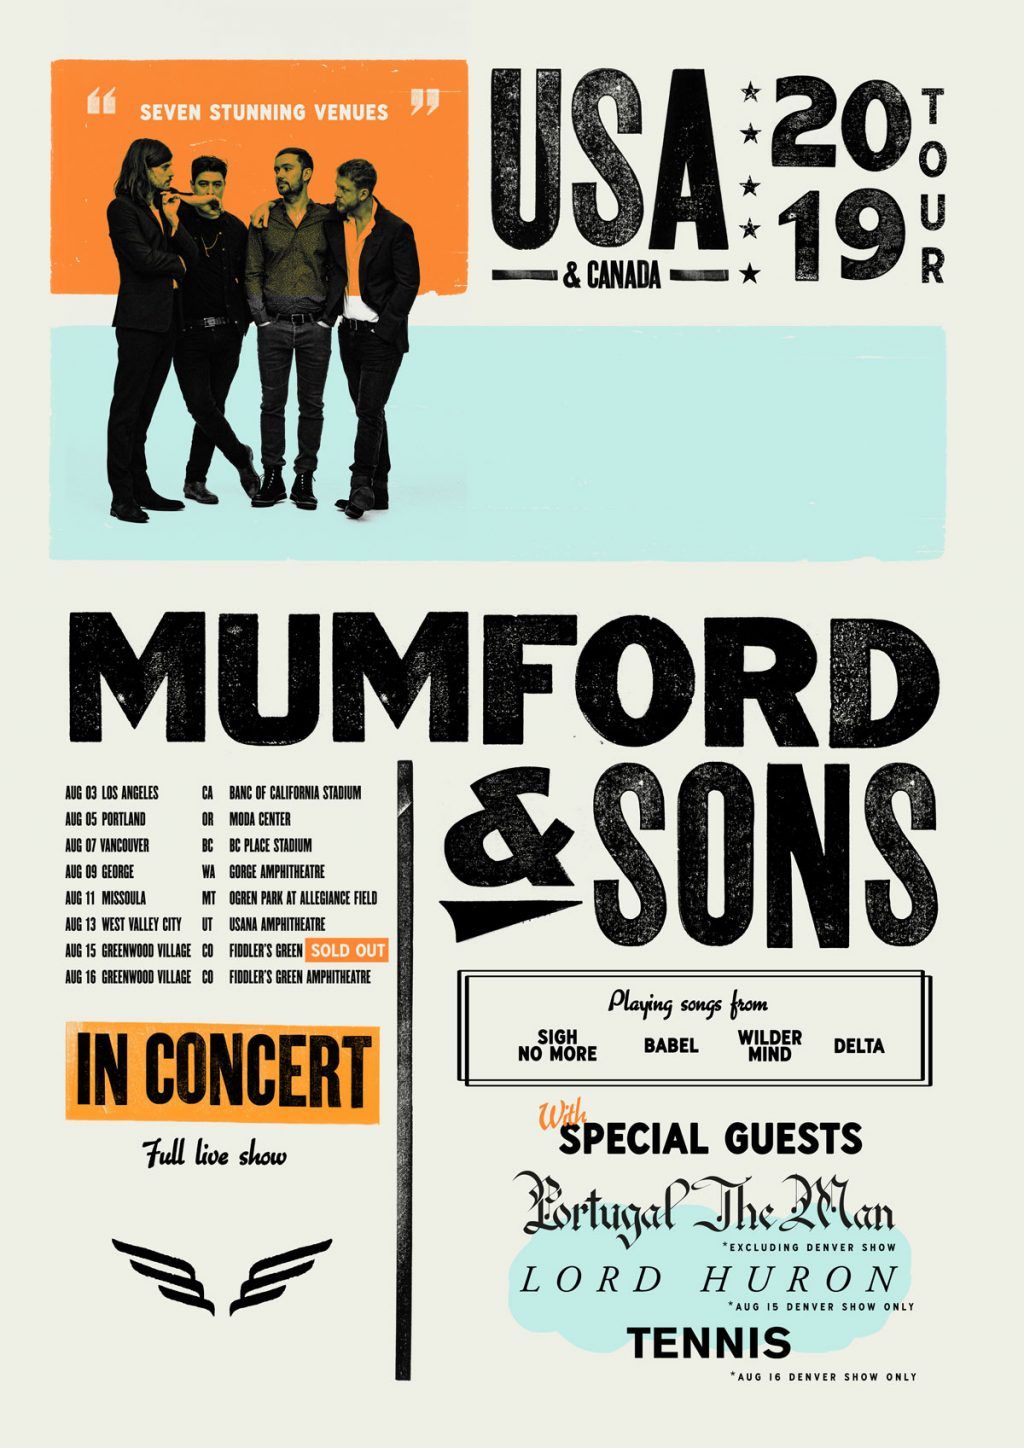 Mumford & Sons - Delta Tour US & Canada